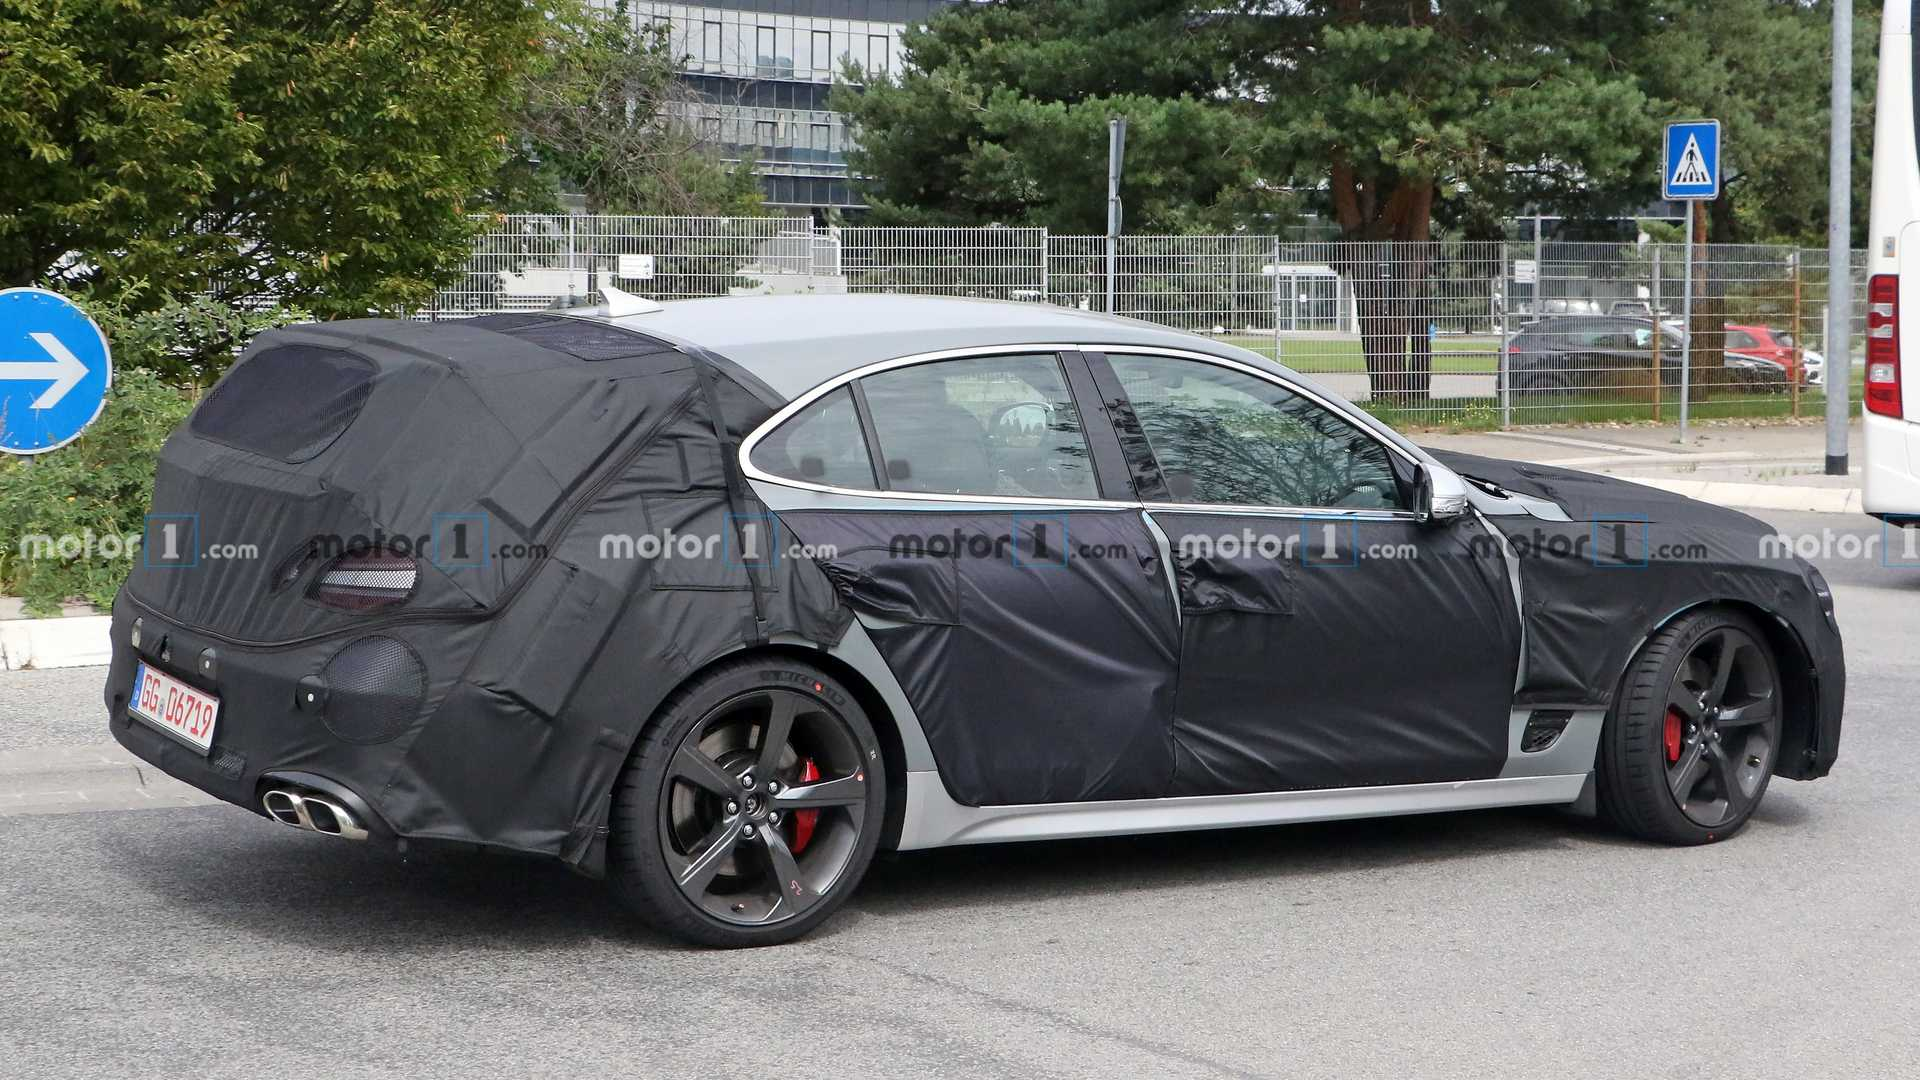 2021 - [Genesis] G70 Shooting Brake Genesis-g70-shooting-brake-wagon-spied-rear-angled-close